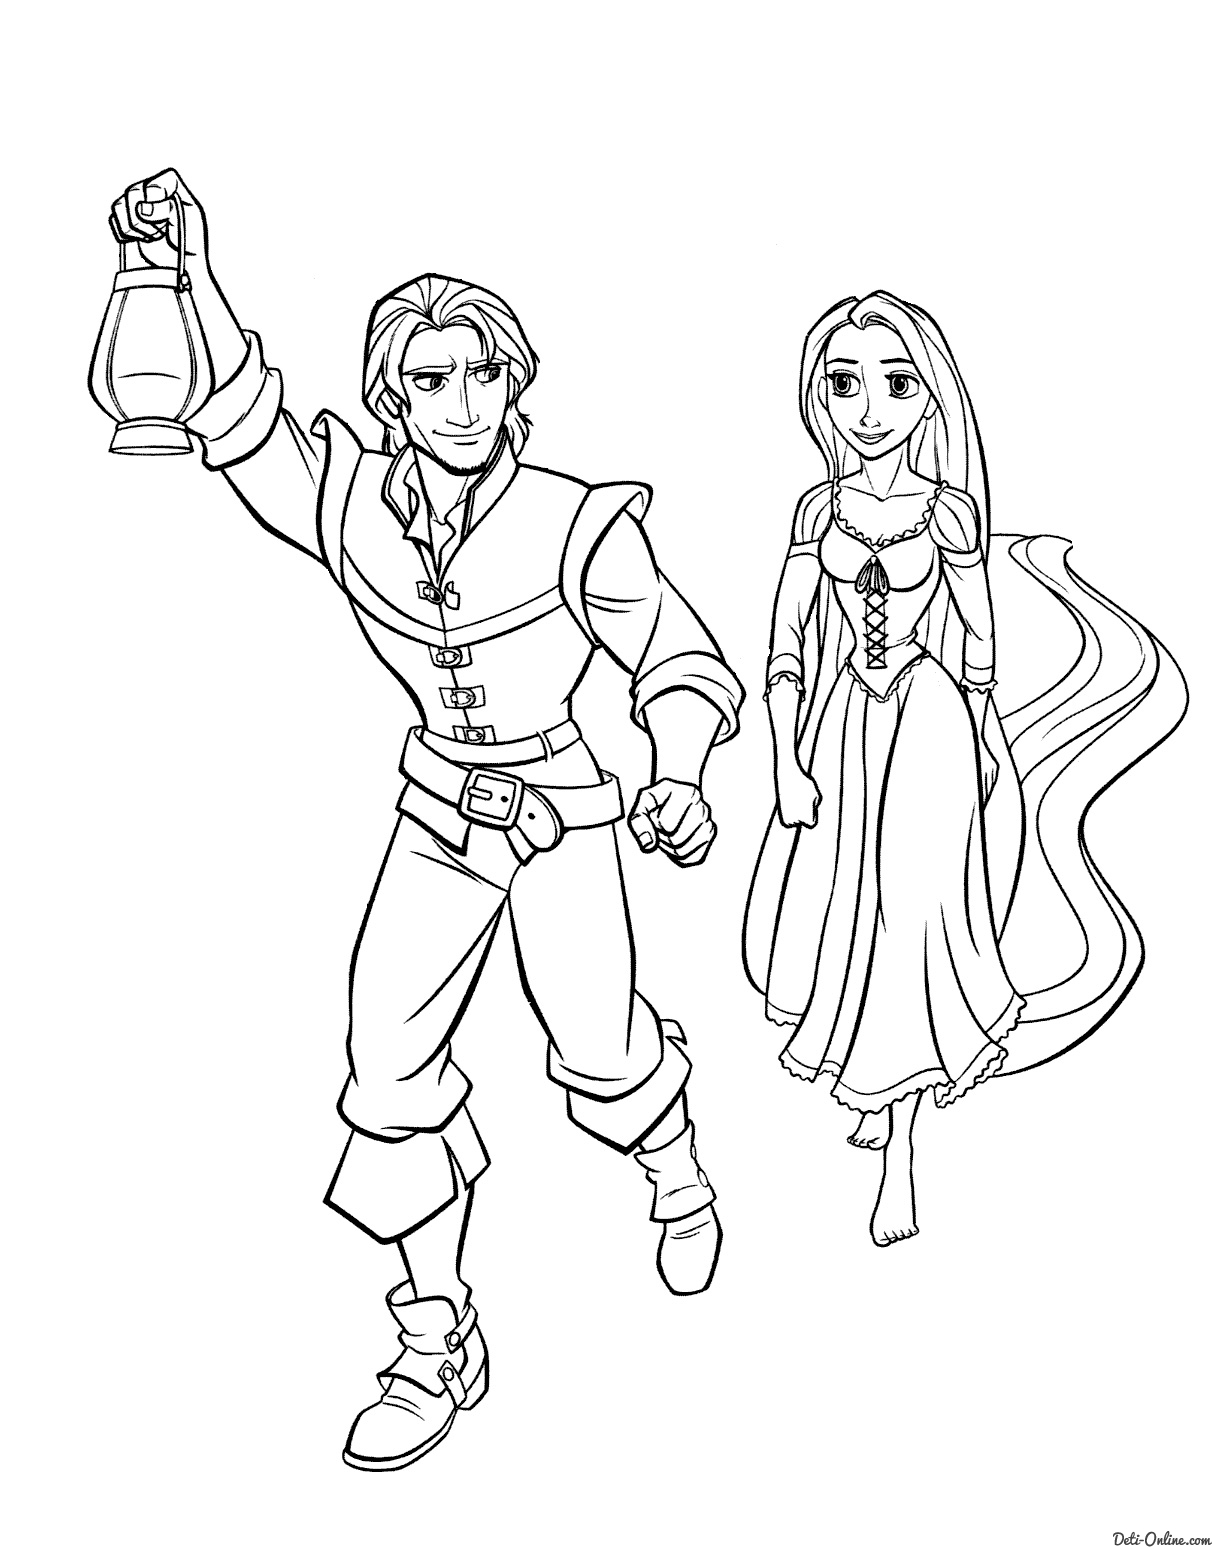 tangled coloring pages - 985